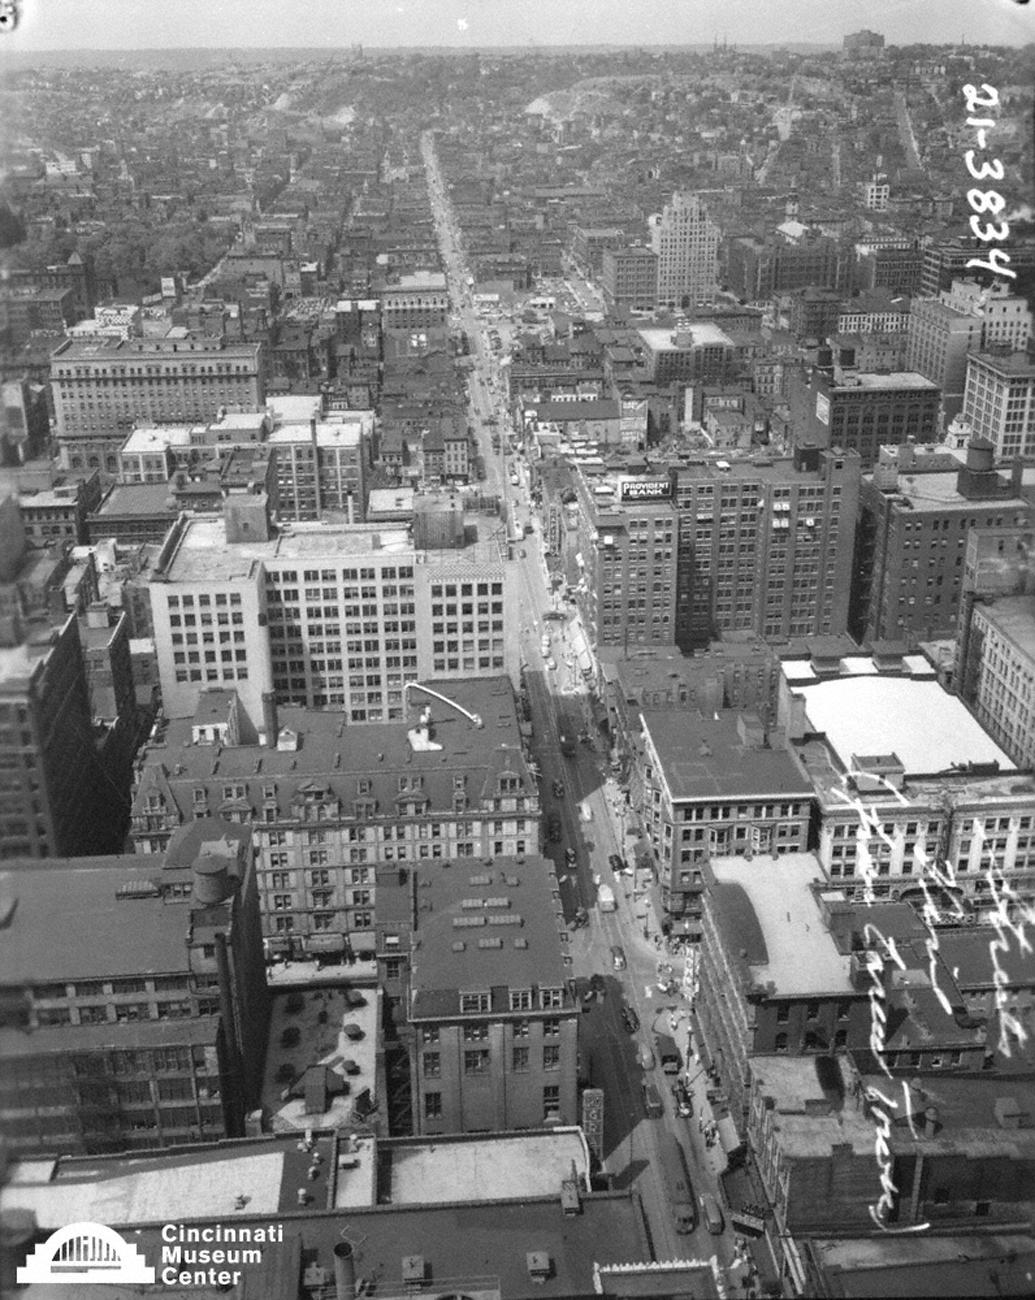 Looking north up Vine Street as seen from atop the Carew Tower sometime in the early 20th Century / Image: Paul Briol, accessed via the Cincinnati Museum Center History Library and Archives // Published: 2.16.19